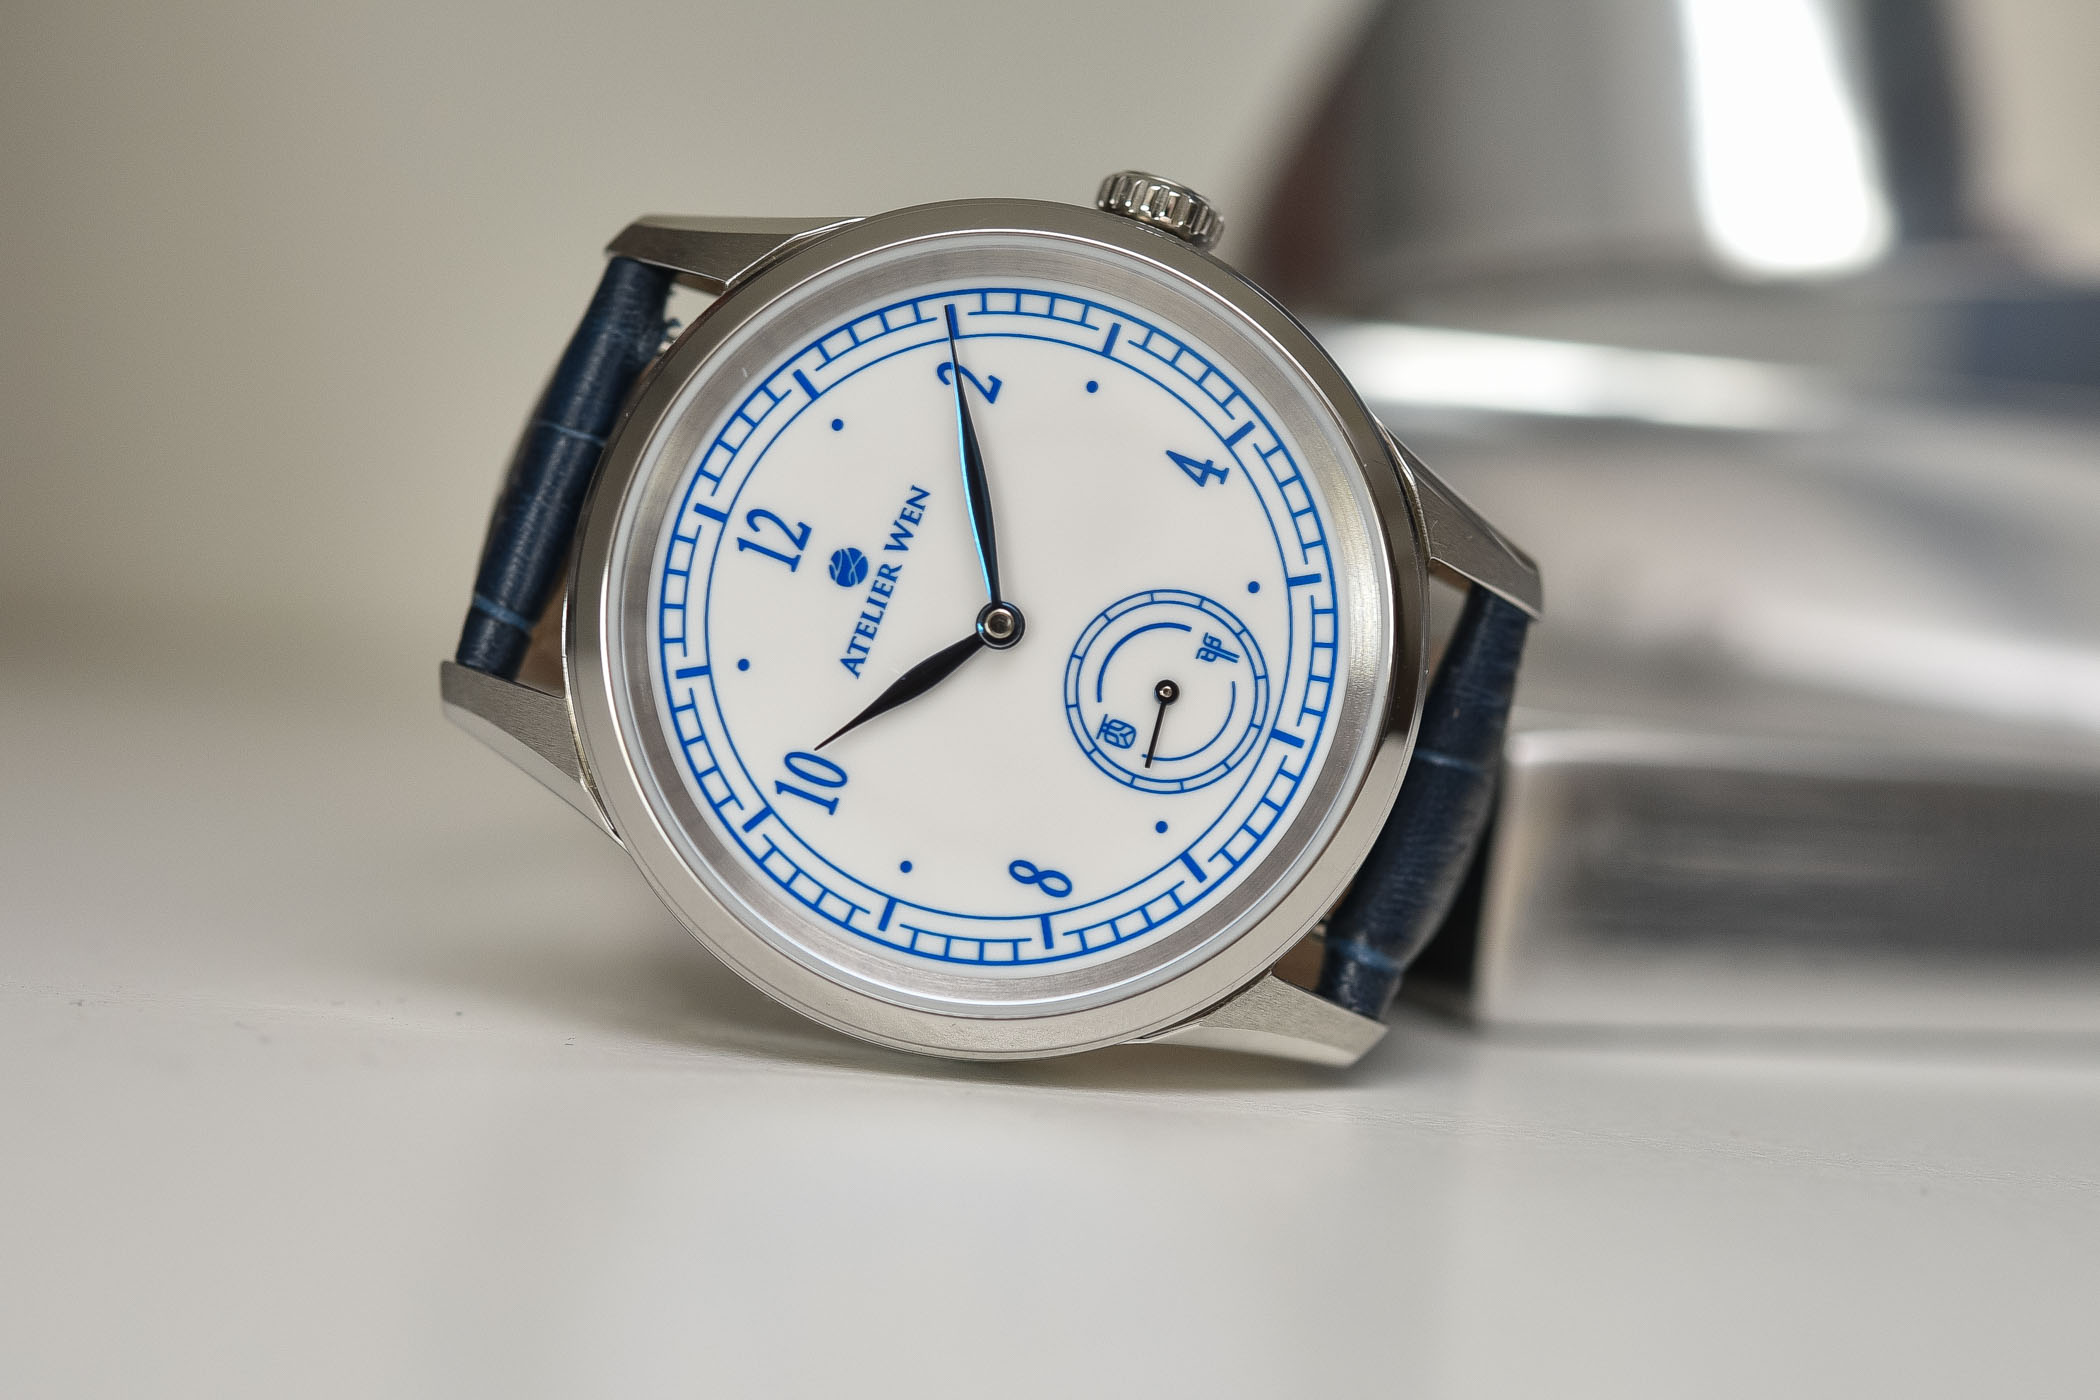 Atelier Wen Procelain dial China-inspired Watches Kickstarter - 8